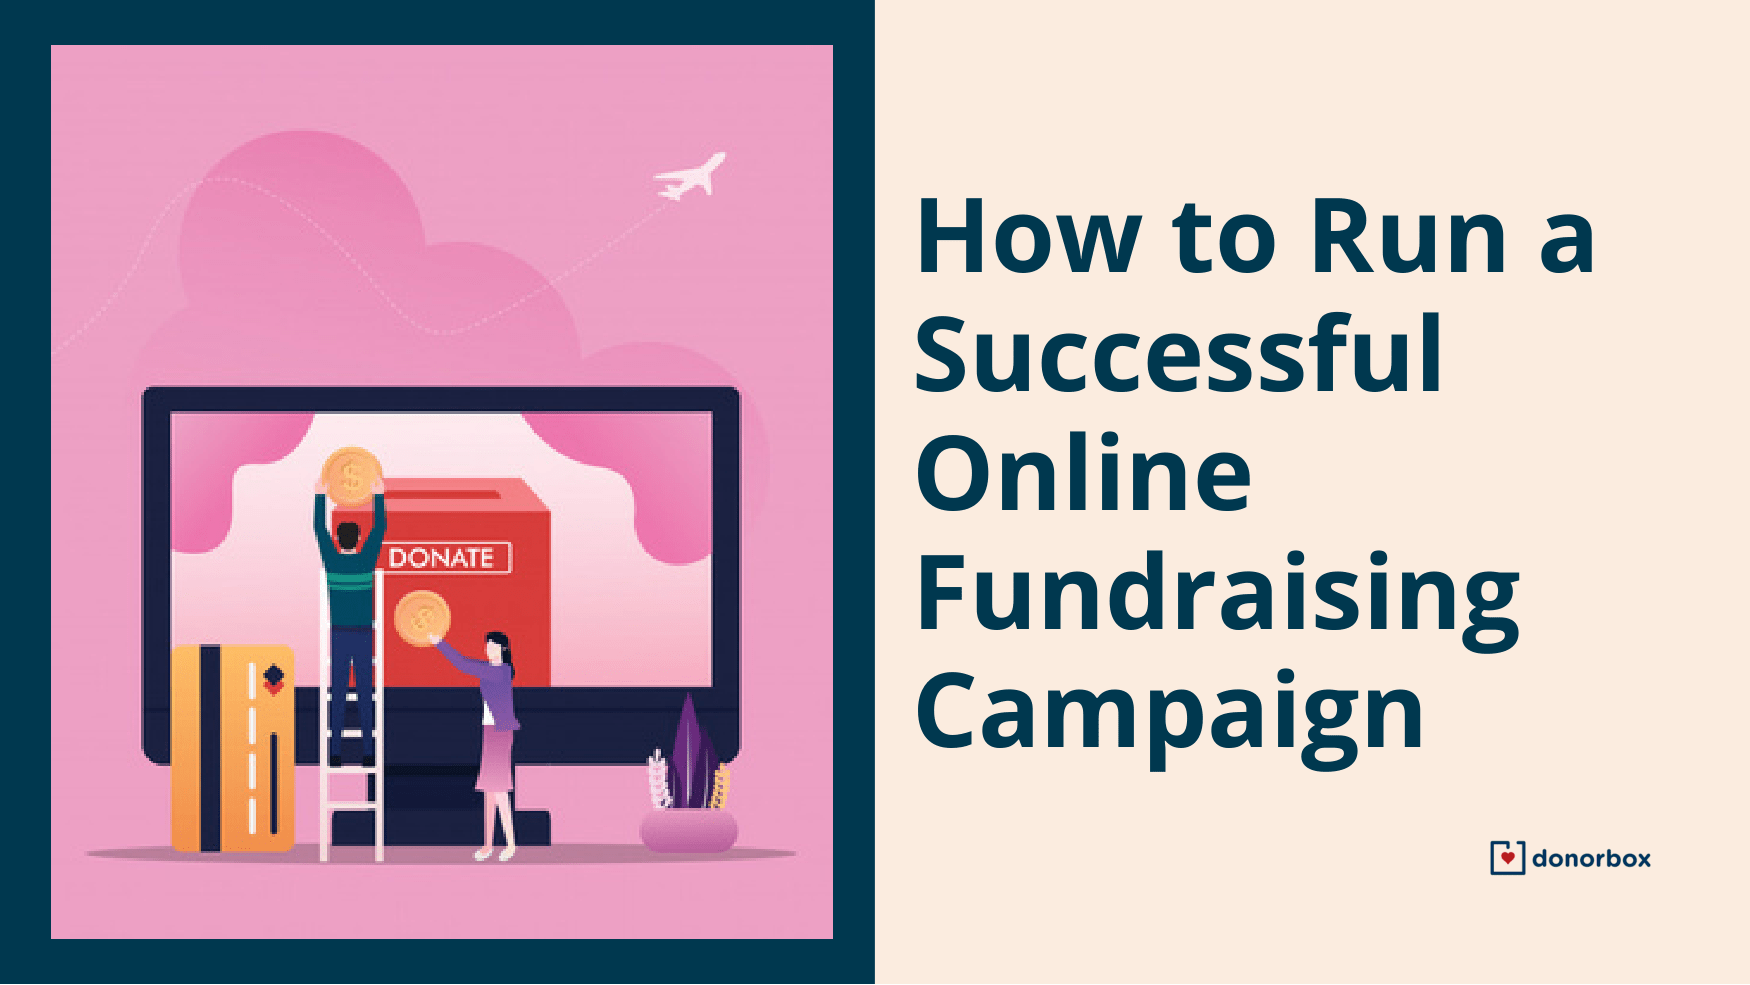 How to Run a Successful Online Fundraising Campaign